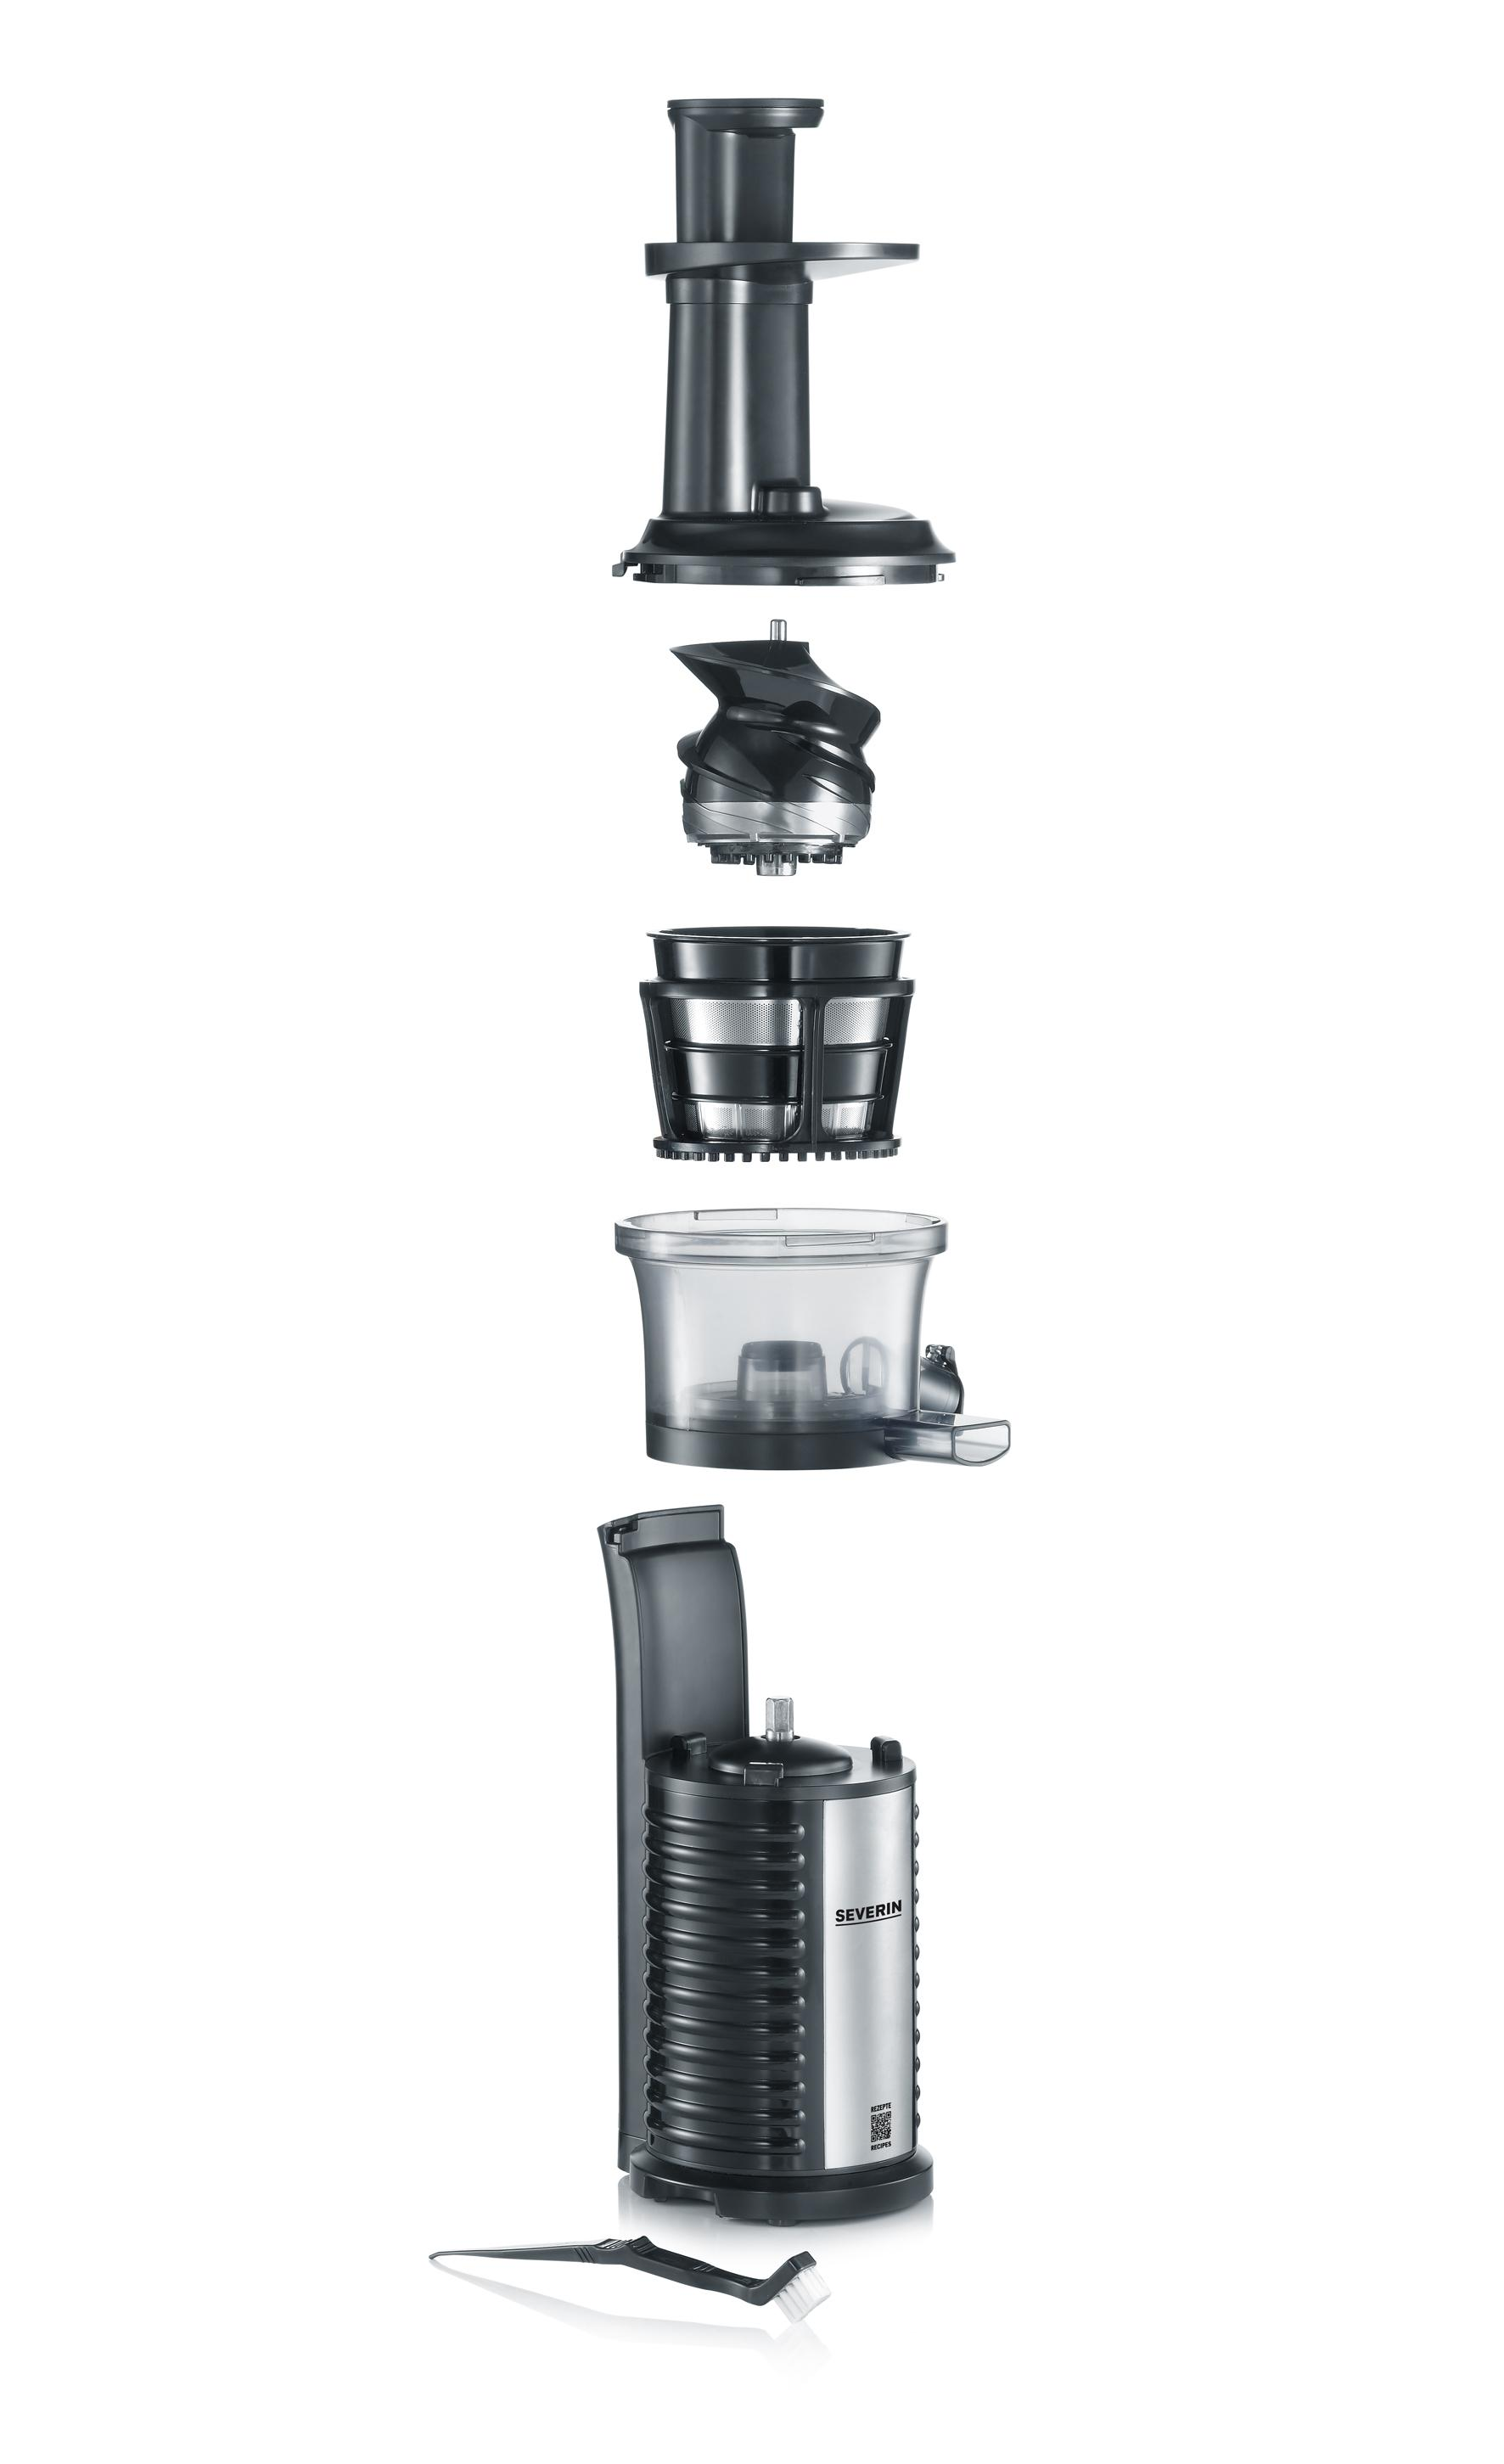 Severin Es 3569 Slow Juicer Miglior Prezzo : Severin ES 3569 Slow Juicer Estrattore di Succo senza Lame, BPA free: Amazon.it: Casa e cucina